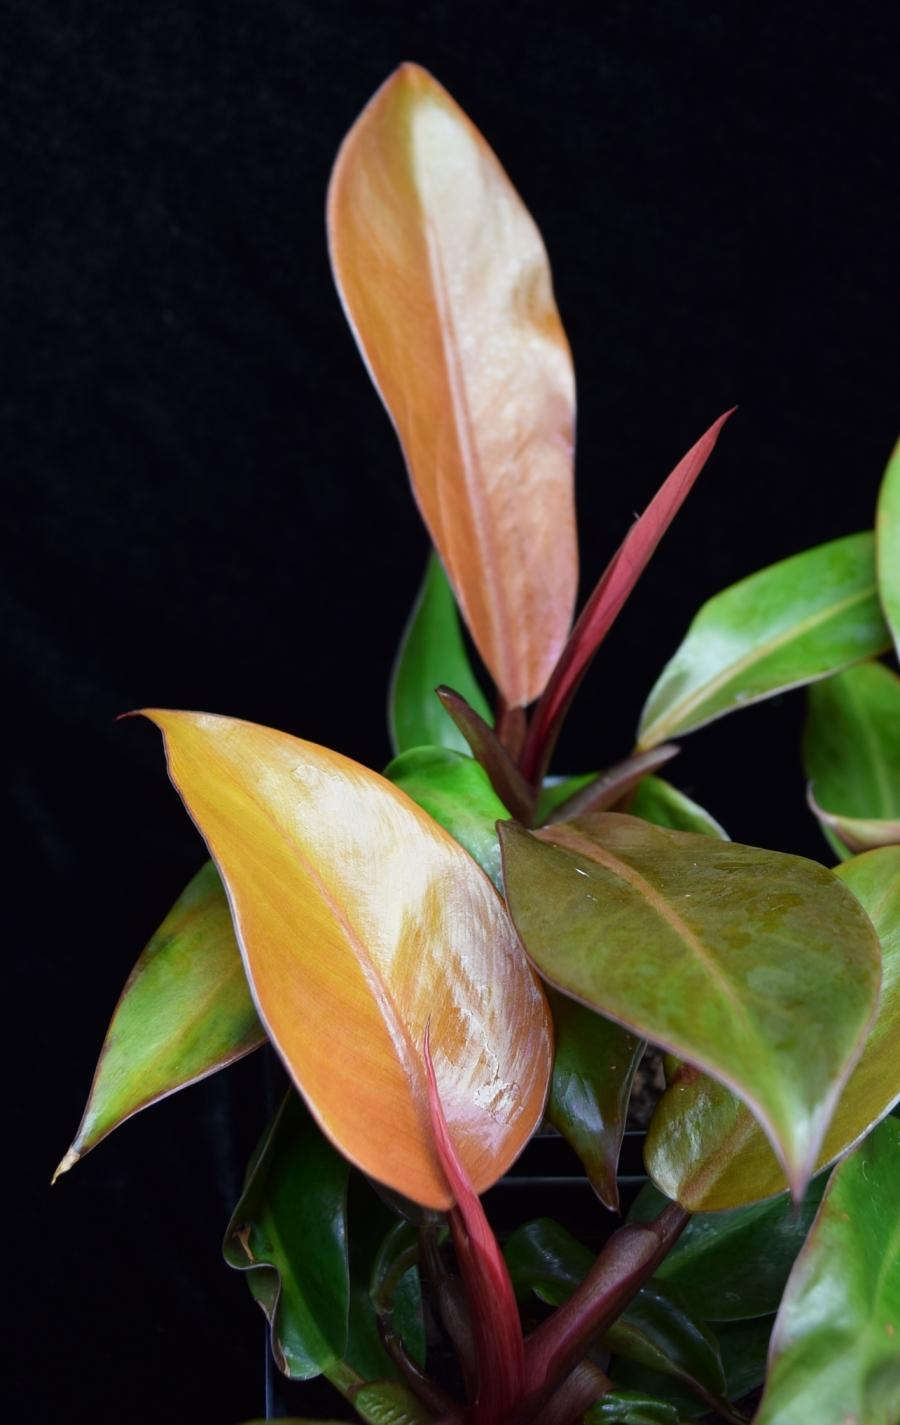 Newly formed leaves on Philodendron Prince of Orange.